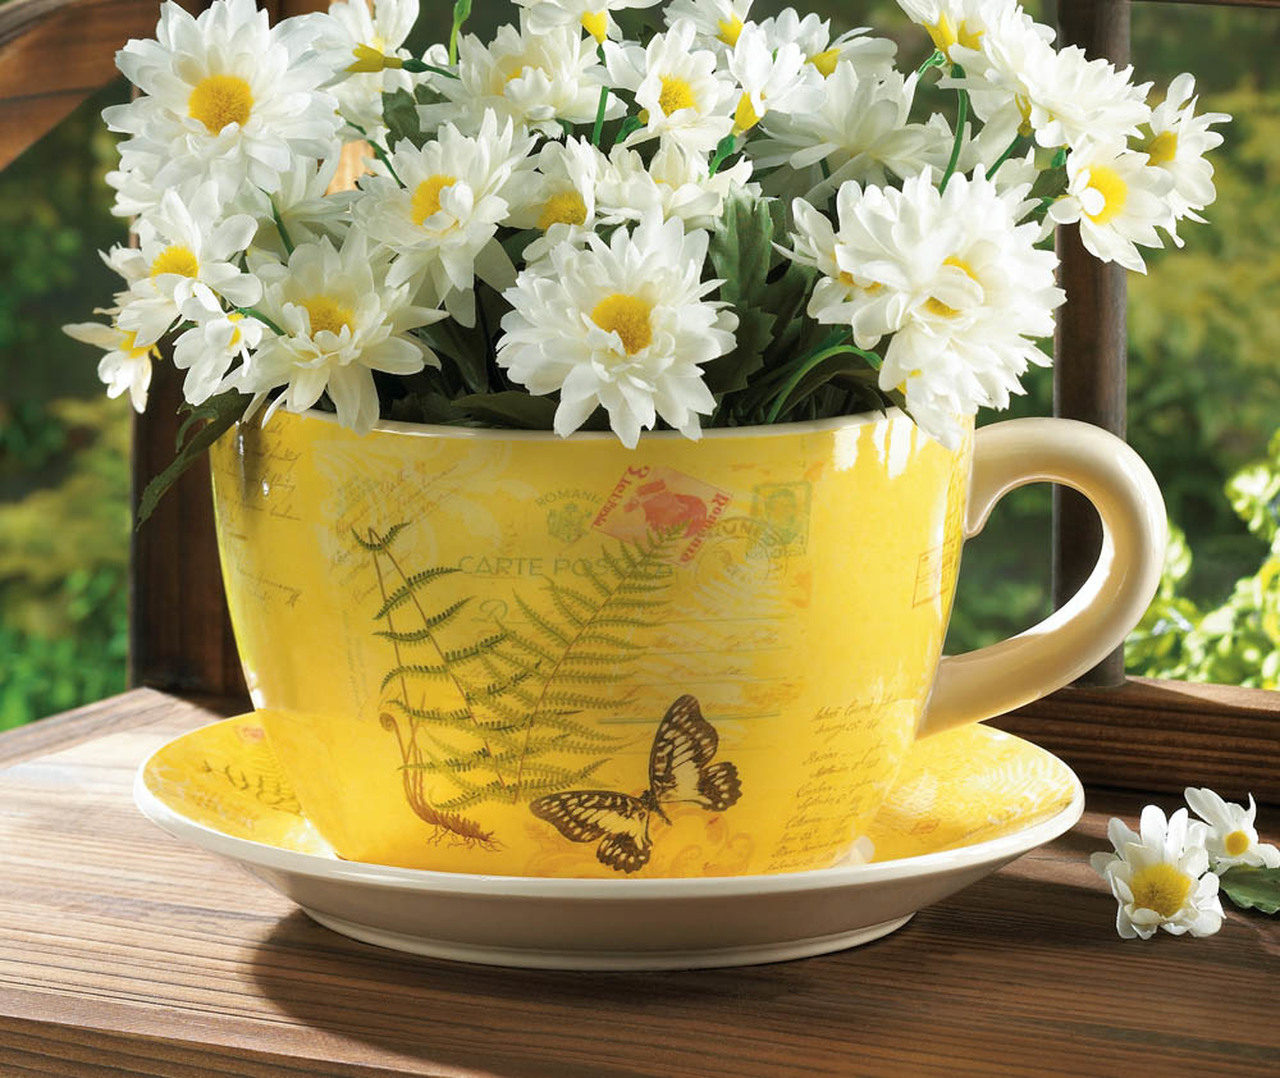 Butterfly Dolomite Tea Cup Planter - 4.5 inches